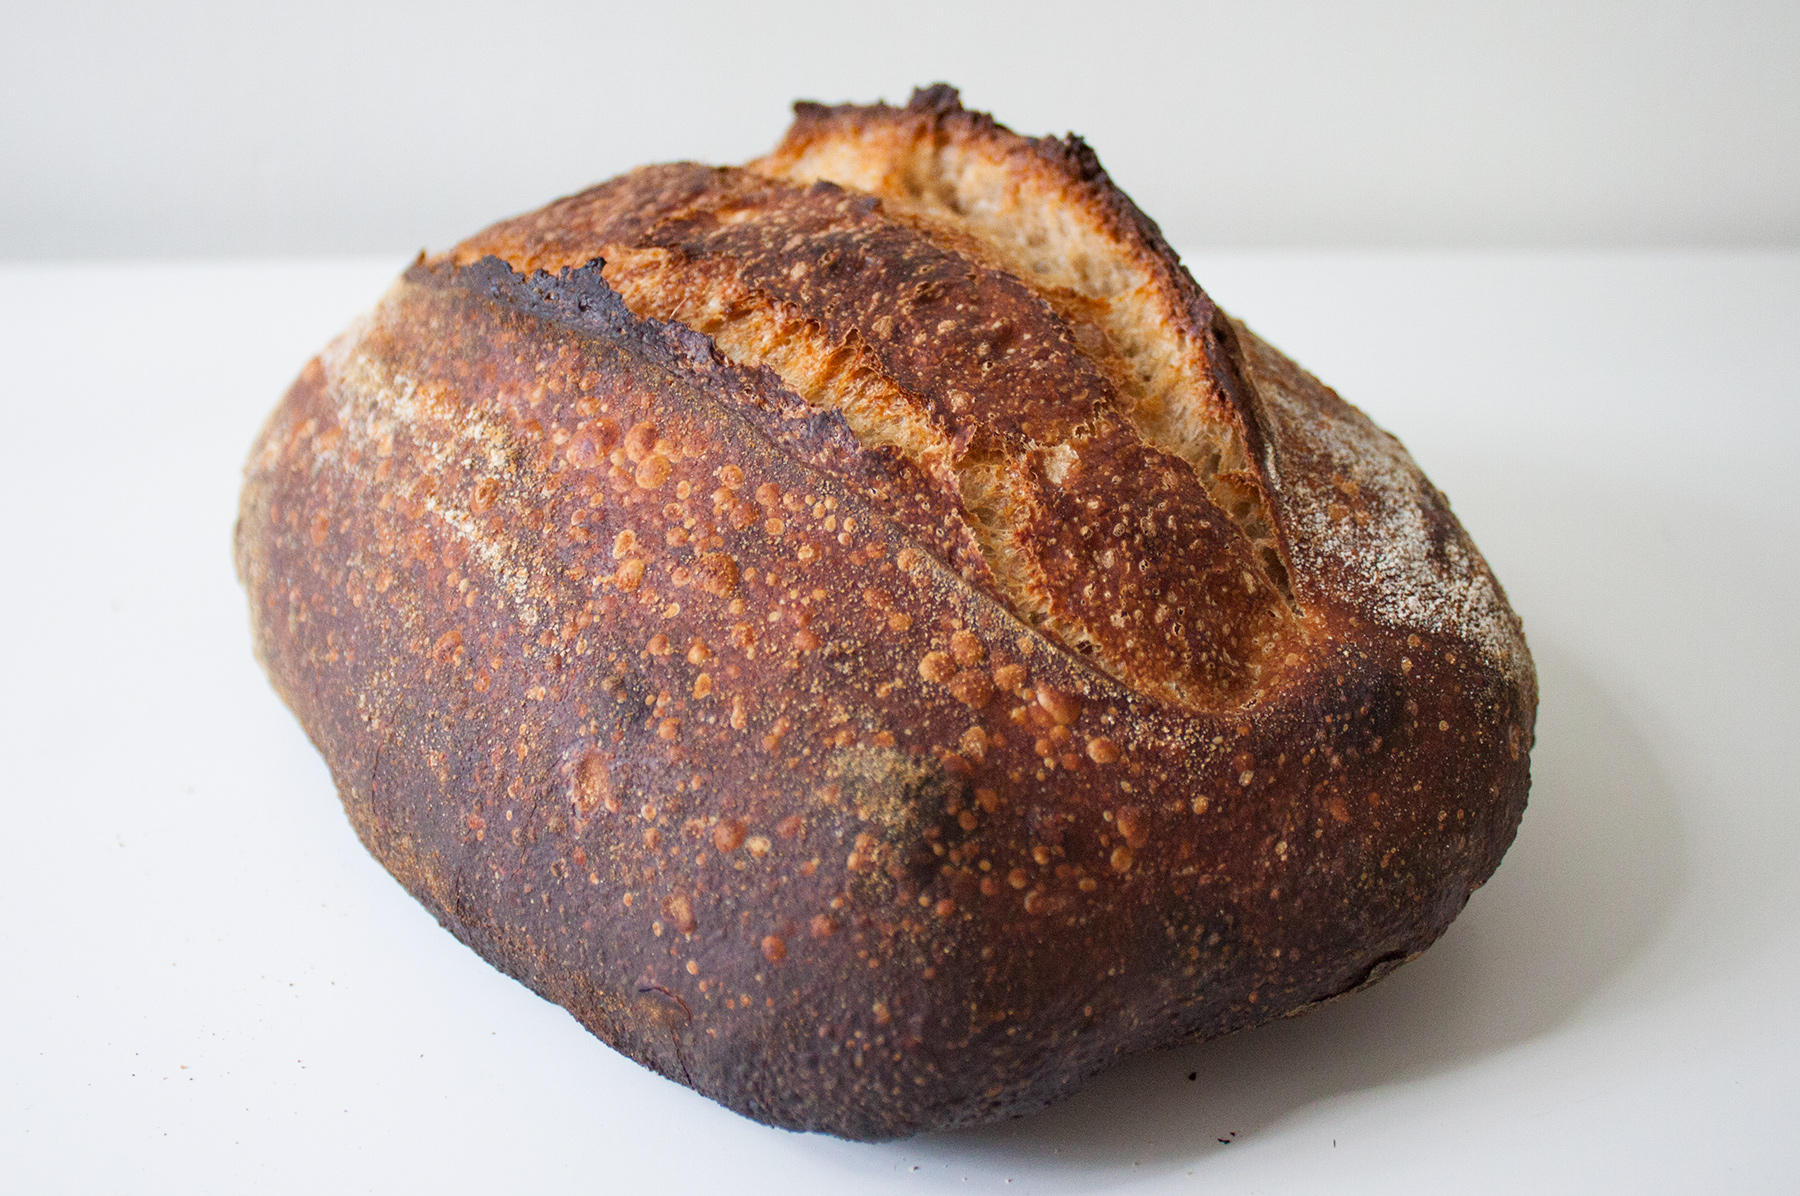 Kingston Country - Our basic country style sourdough. Made with mostly white flour with a small percentage of NY state whole wheat. It has a soft and open crumb and a very mild sour flavor.